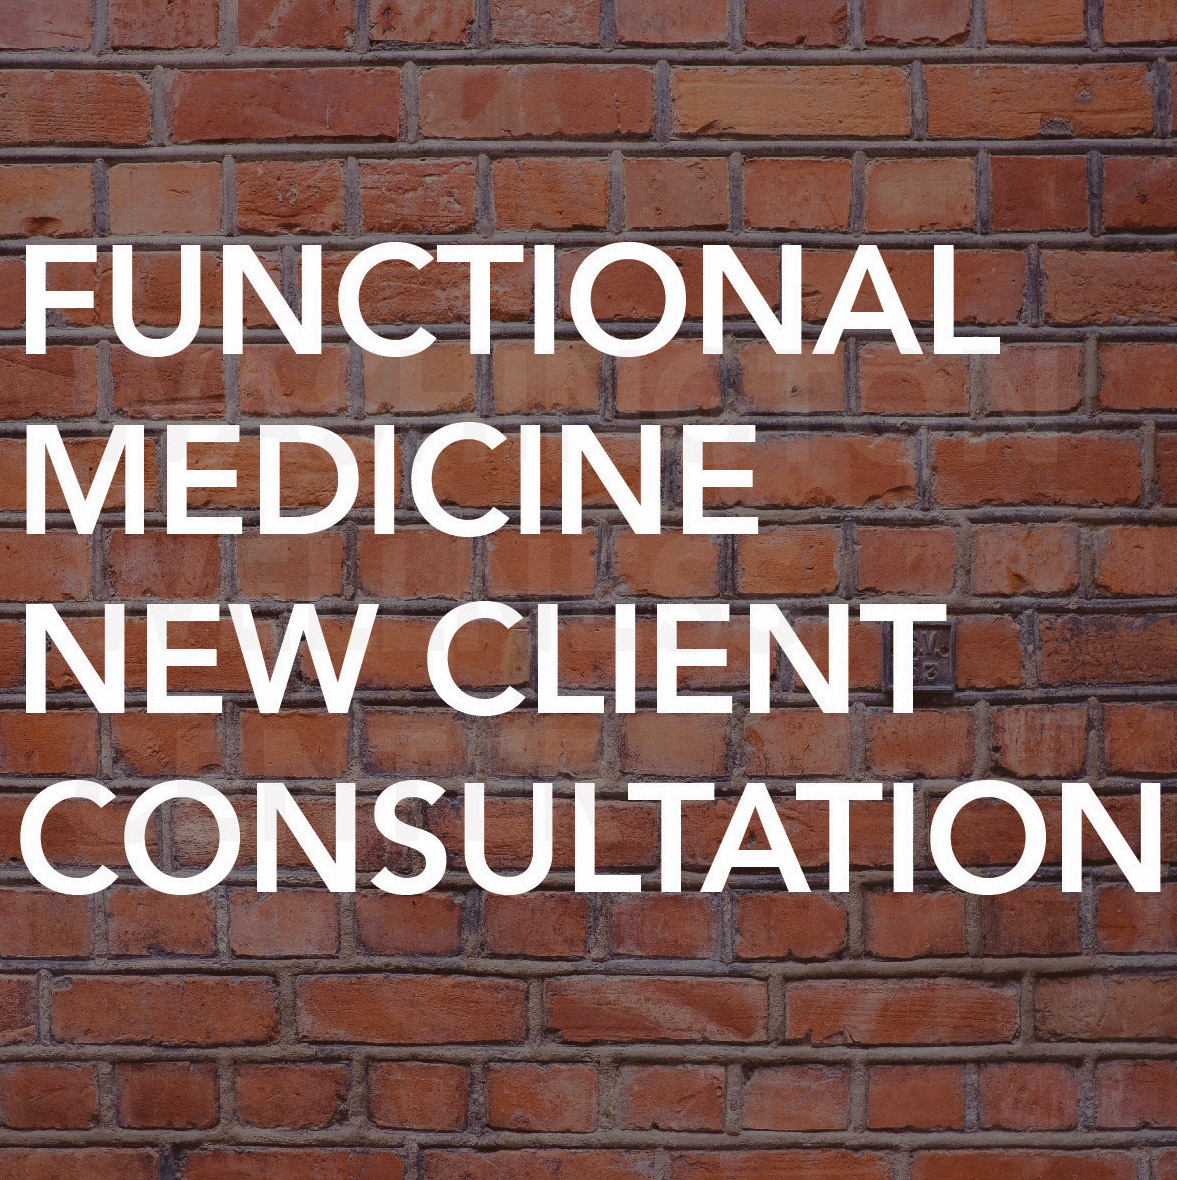 functional+medicine+new+client+central+illinois.jpg